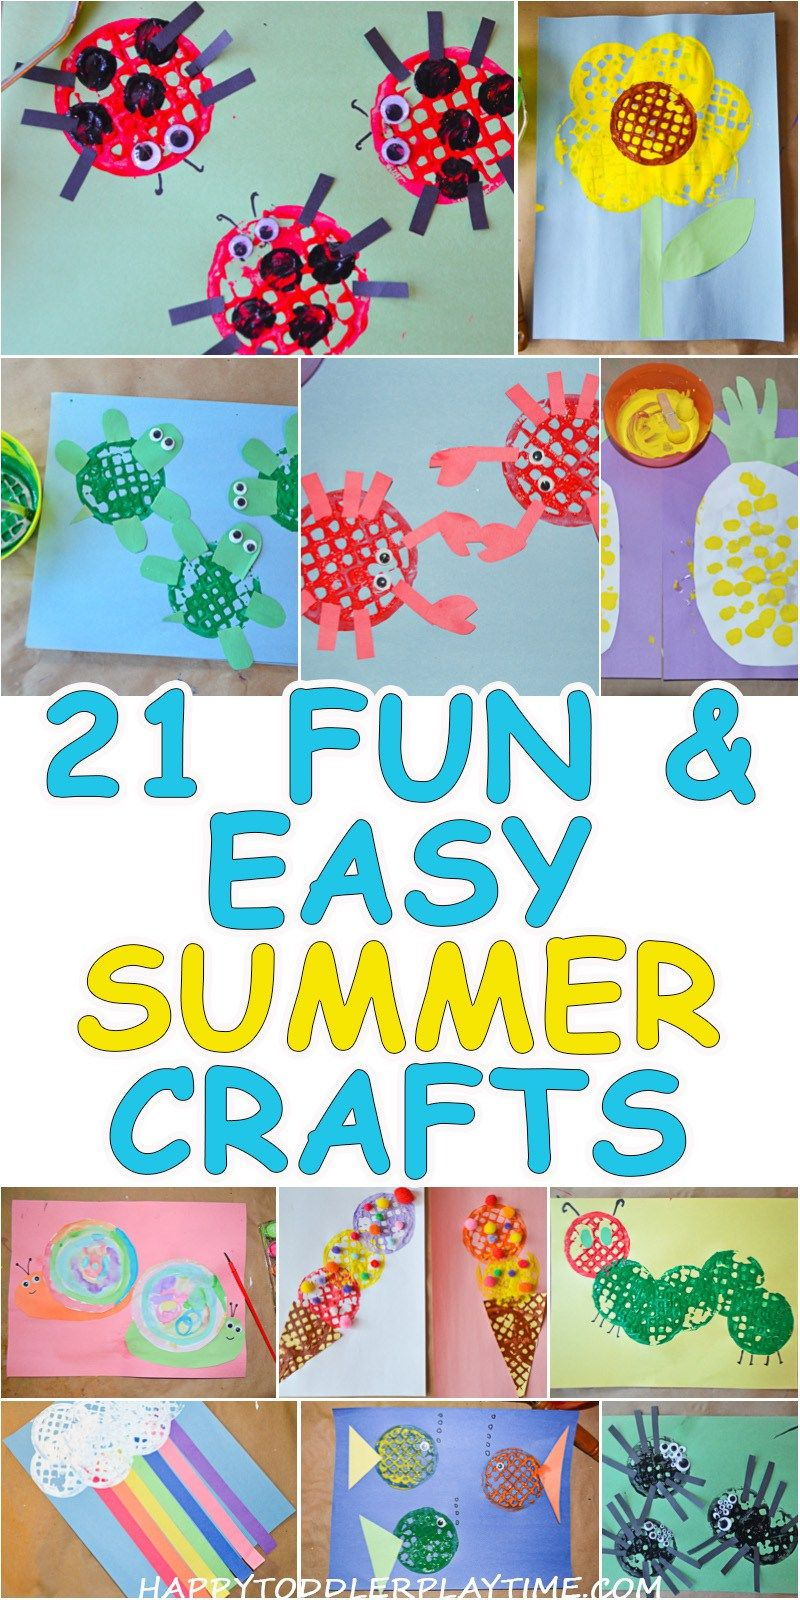 21 fun easy crafts for summer fun easy crafts summer